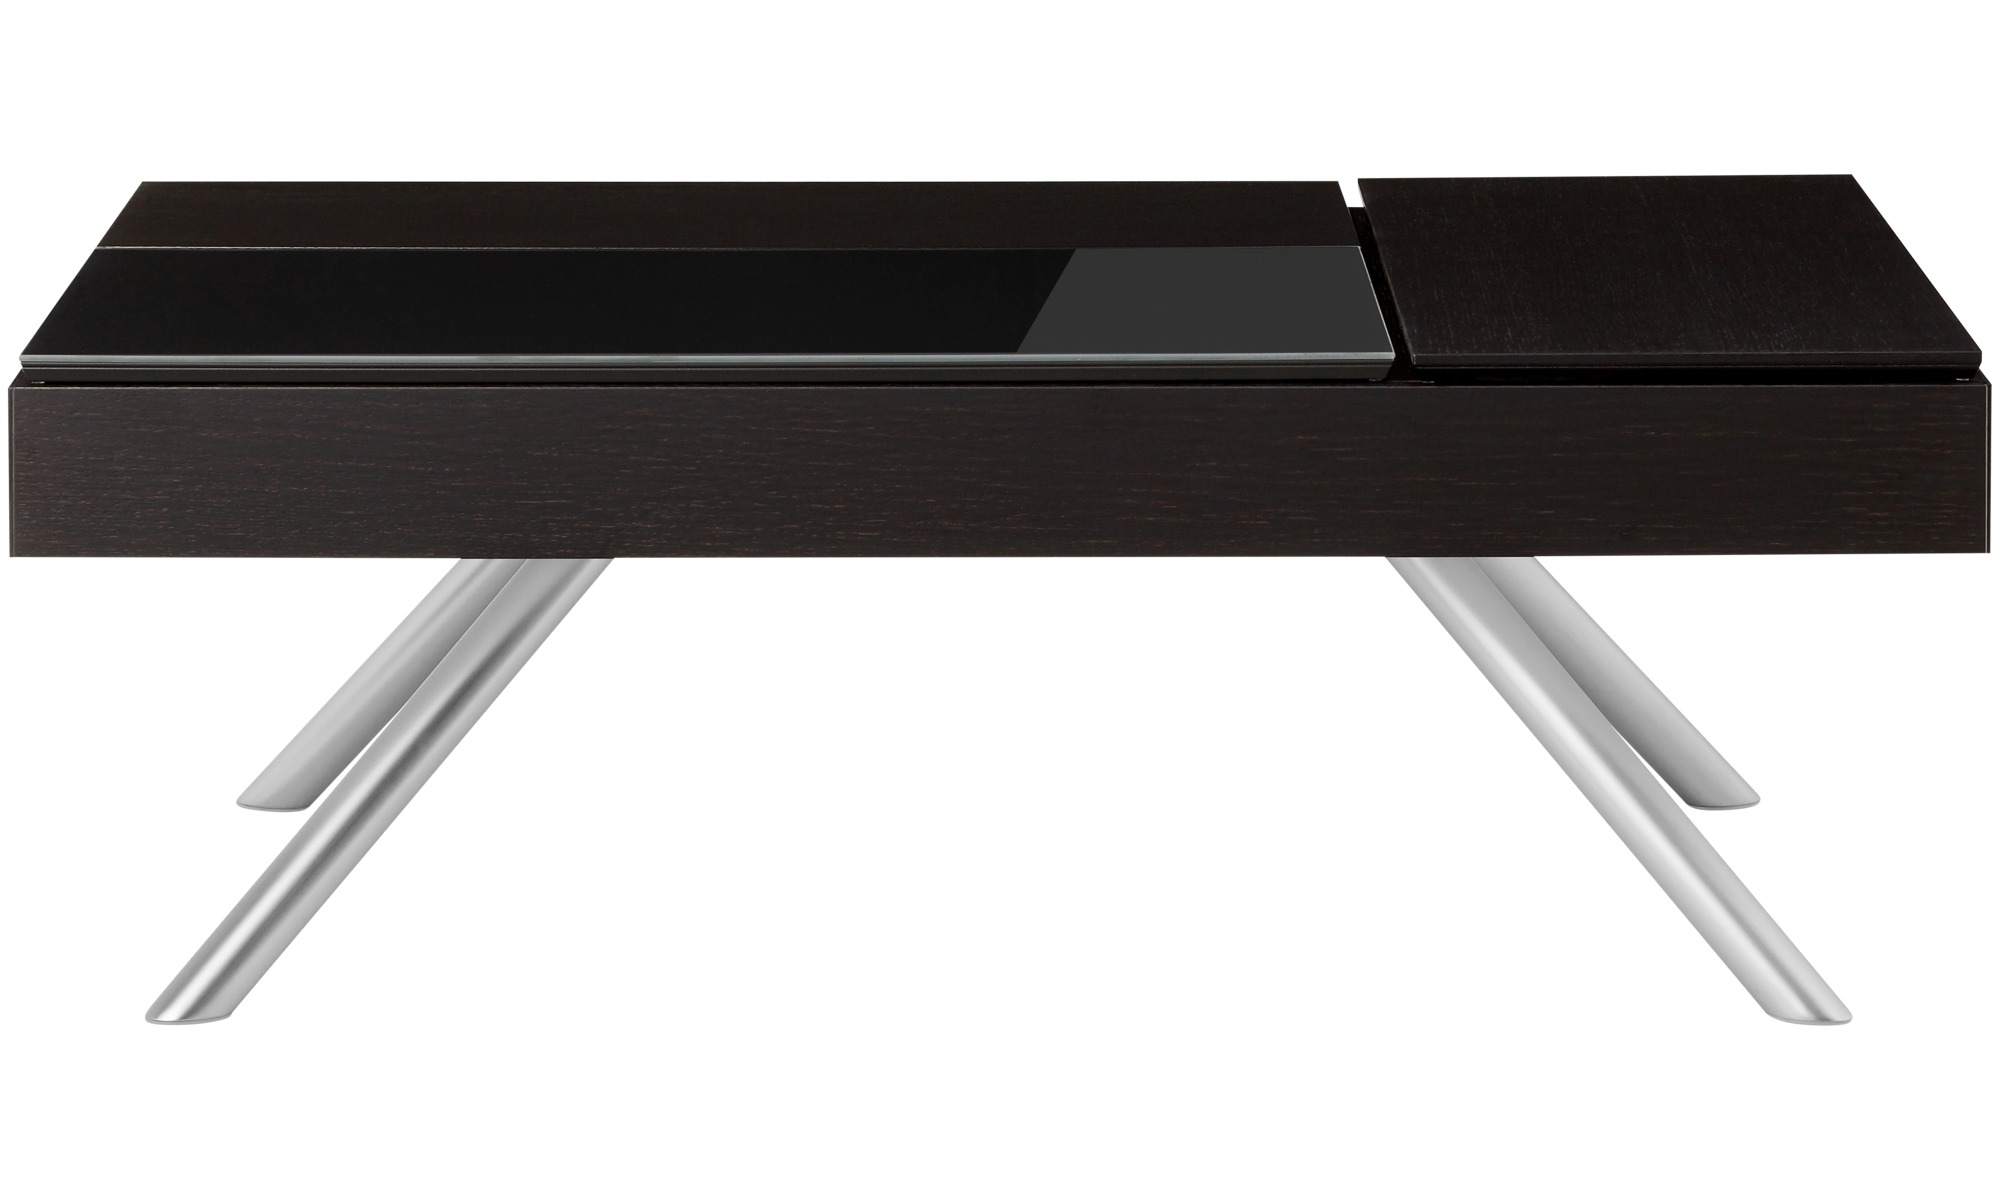 - Coffee Tables - Chiva Functional Coffee Table With Storage - BoConcept